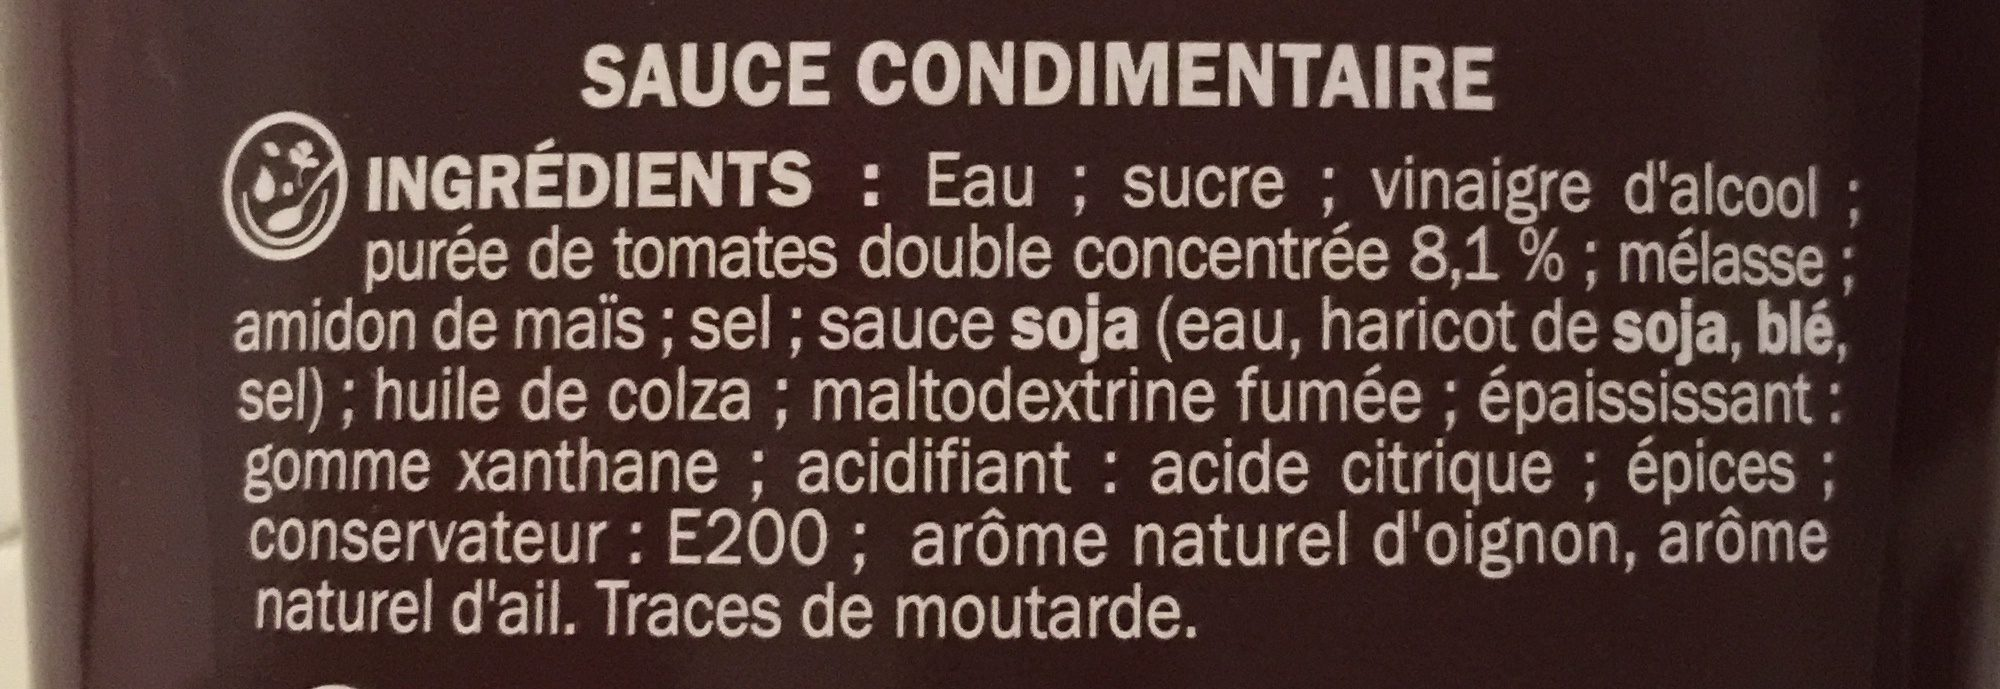 Sauce barbecue - flacon - Ingrédients - fr